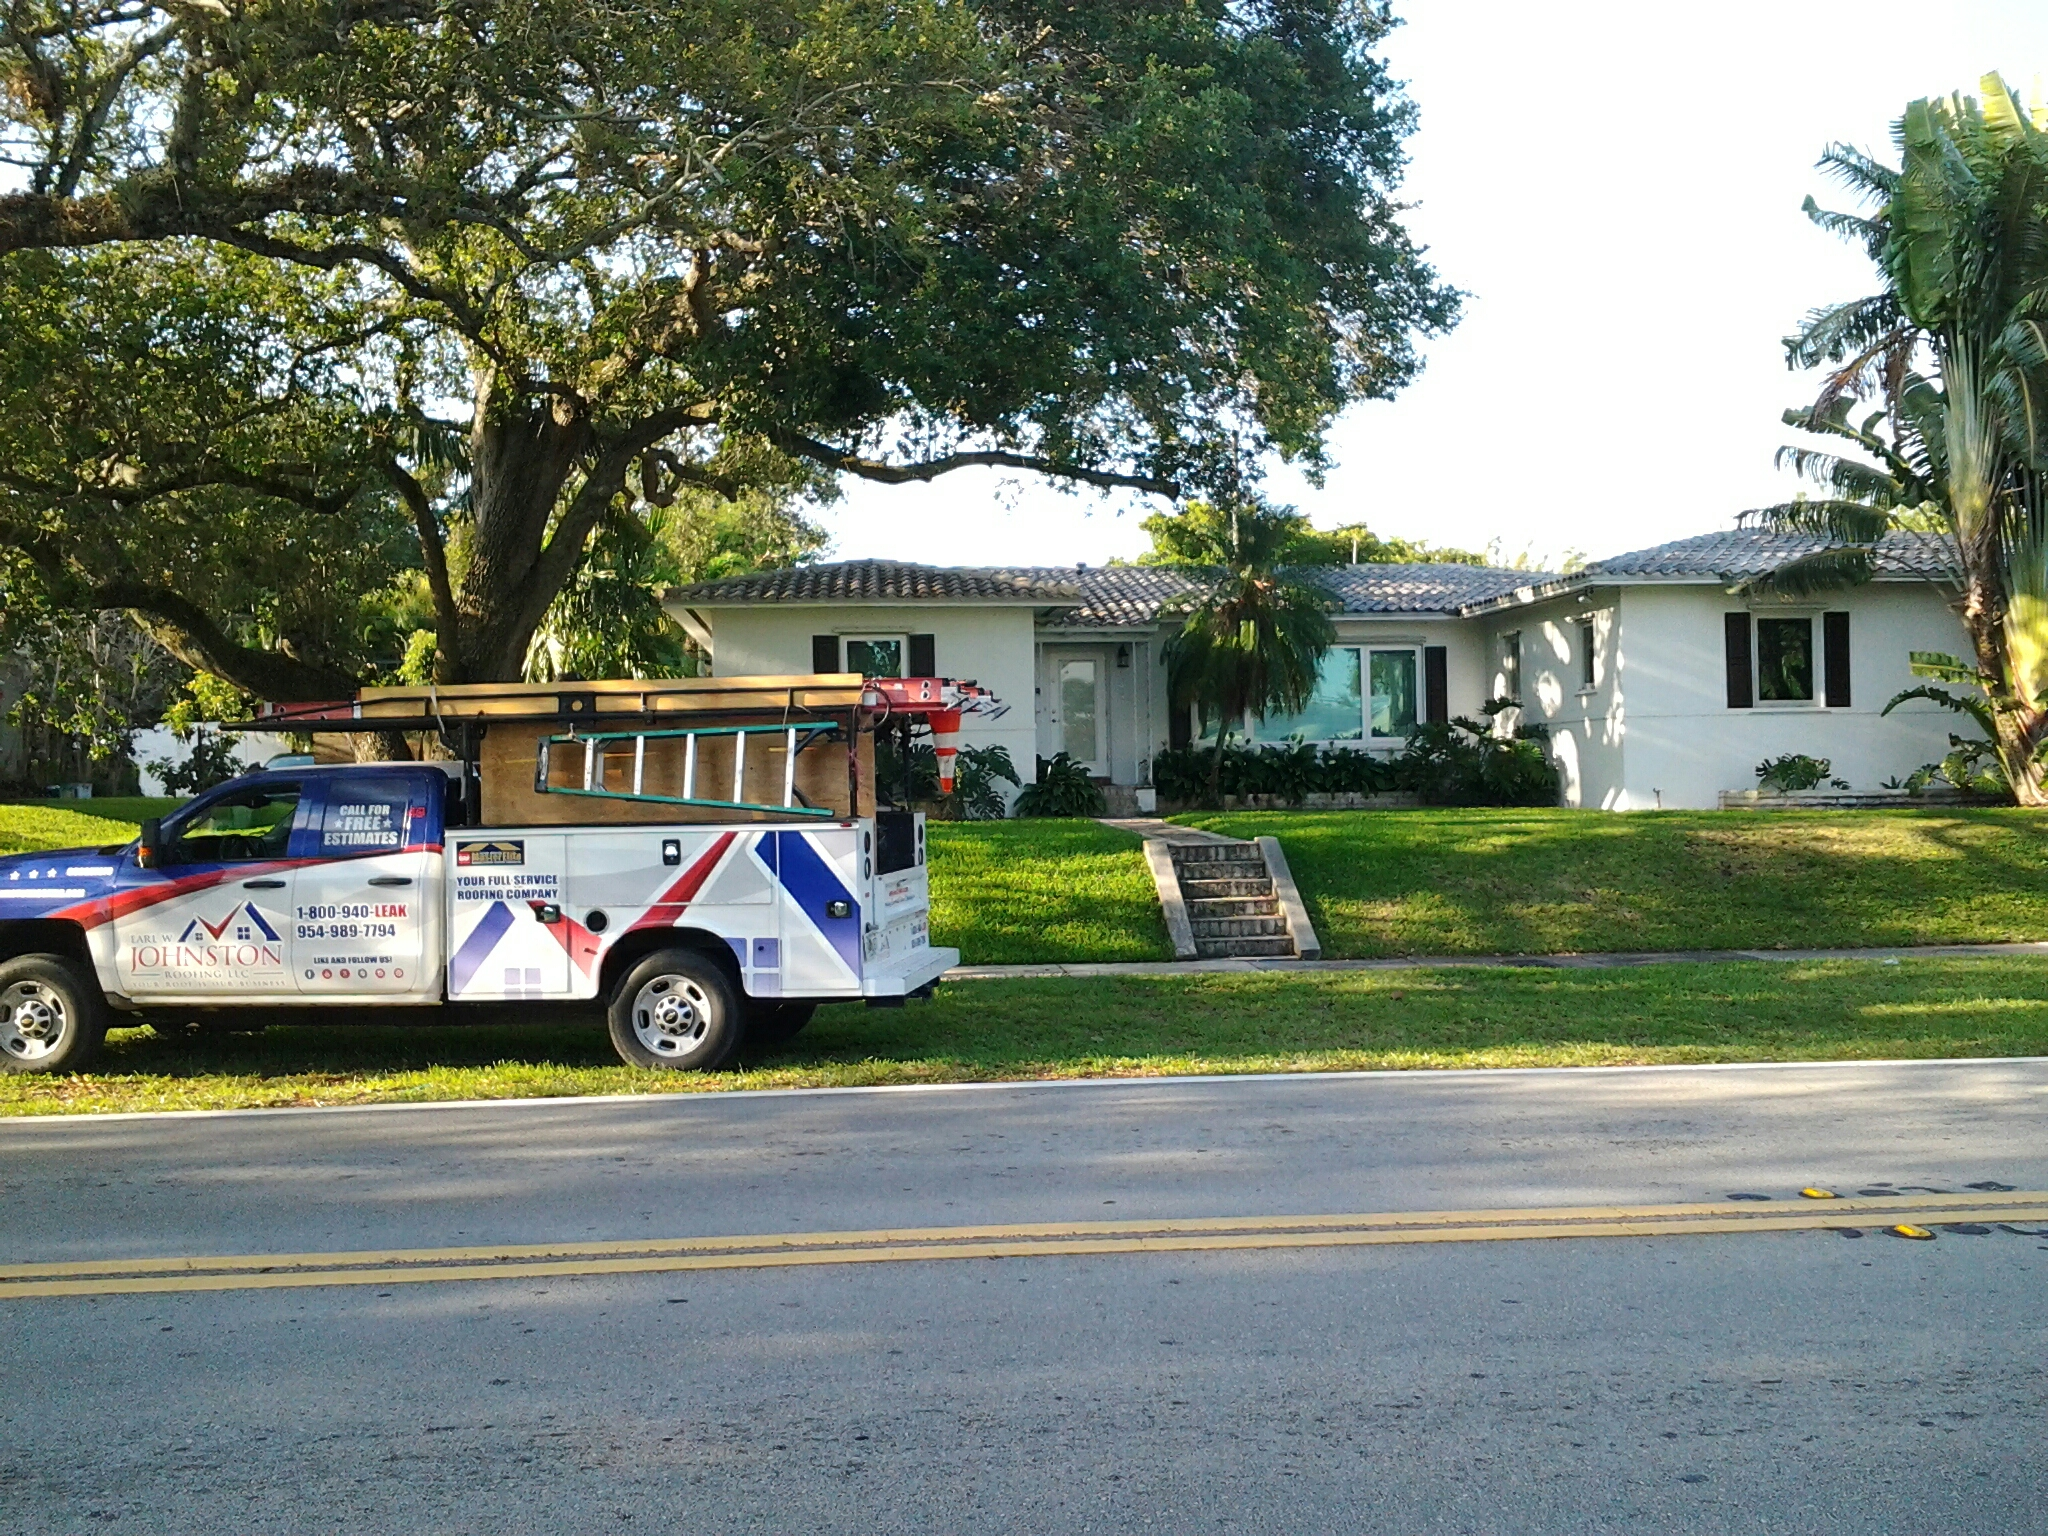 Miami Shores, FL - Tile roof repair in the city of miami shore fl this repair is being done by Earl w Johnston roofing company Jos? end Duane are you repair technicians